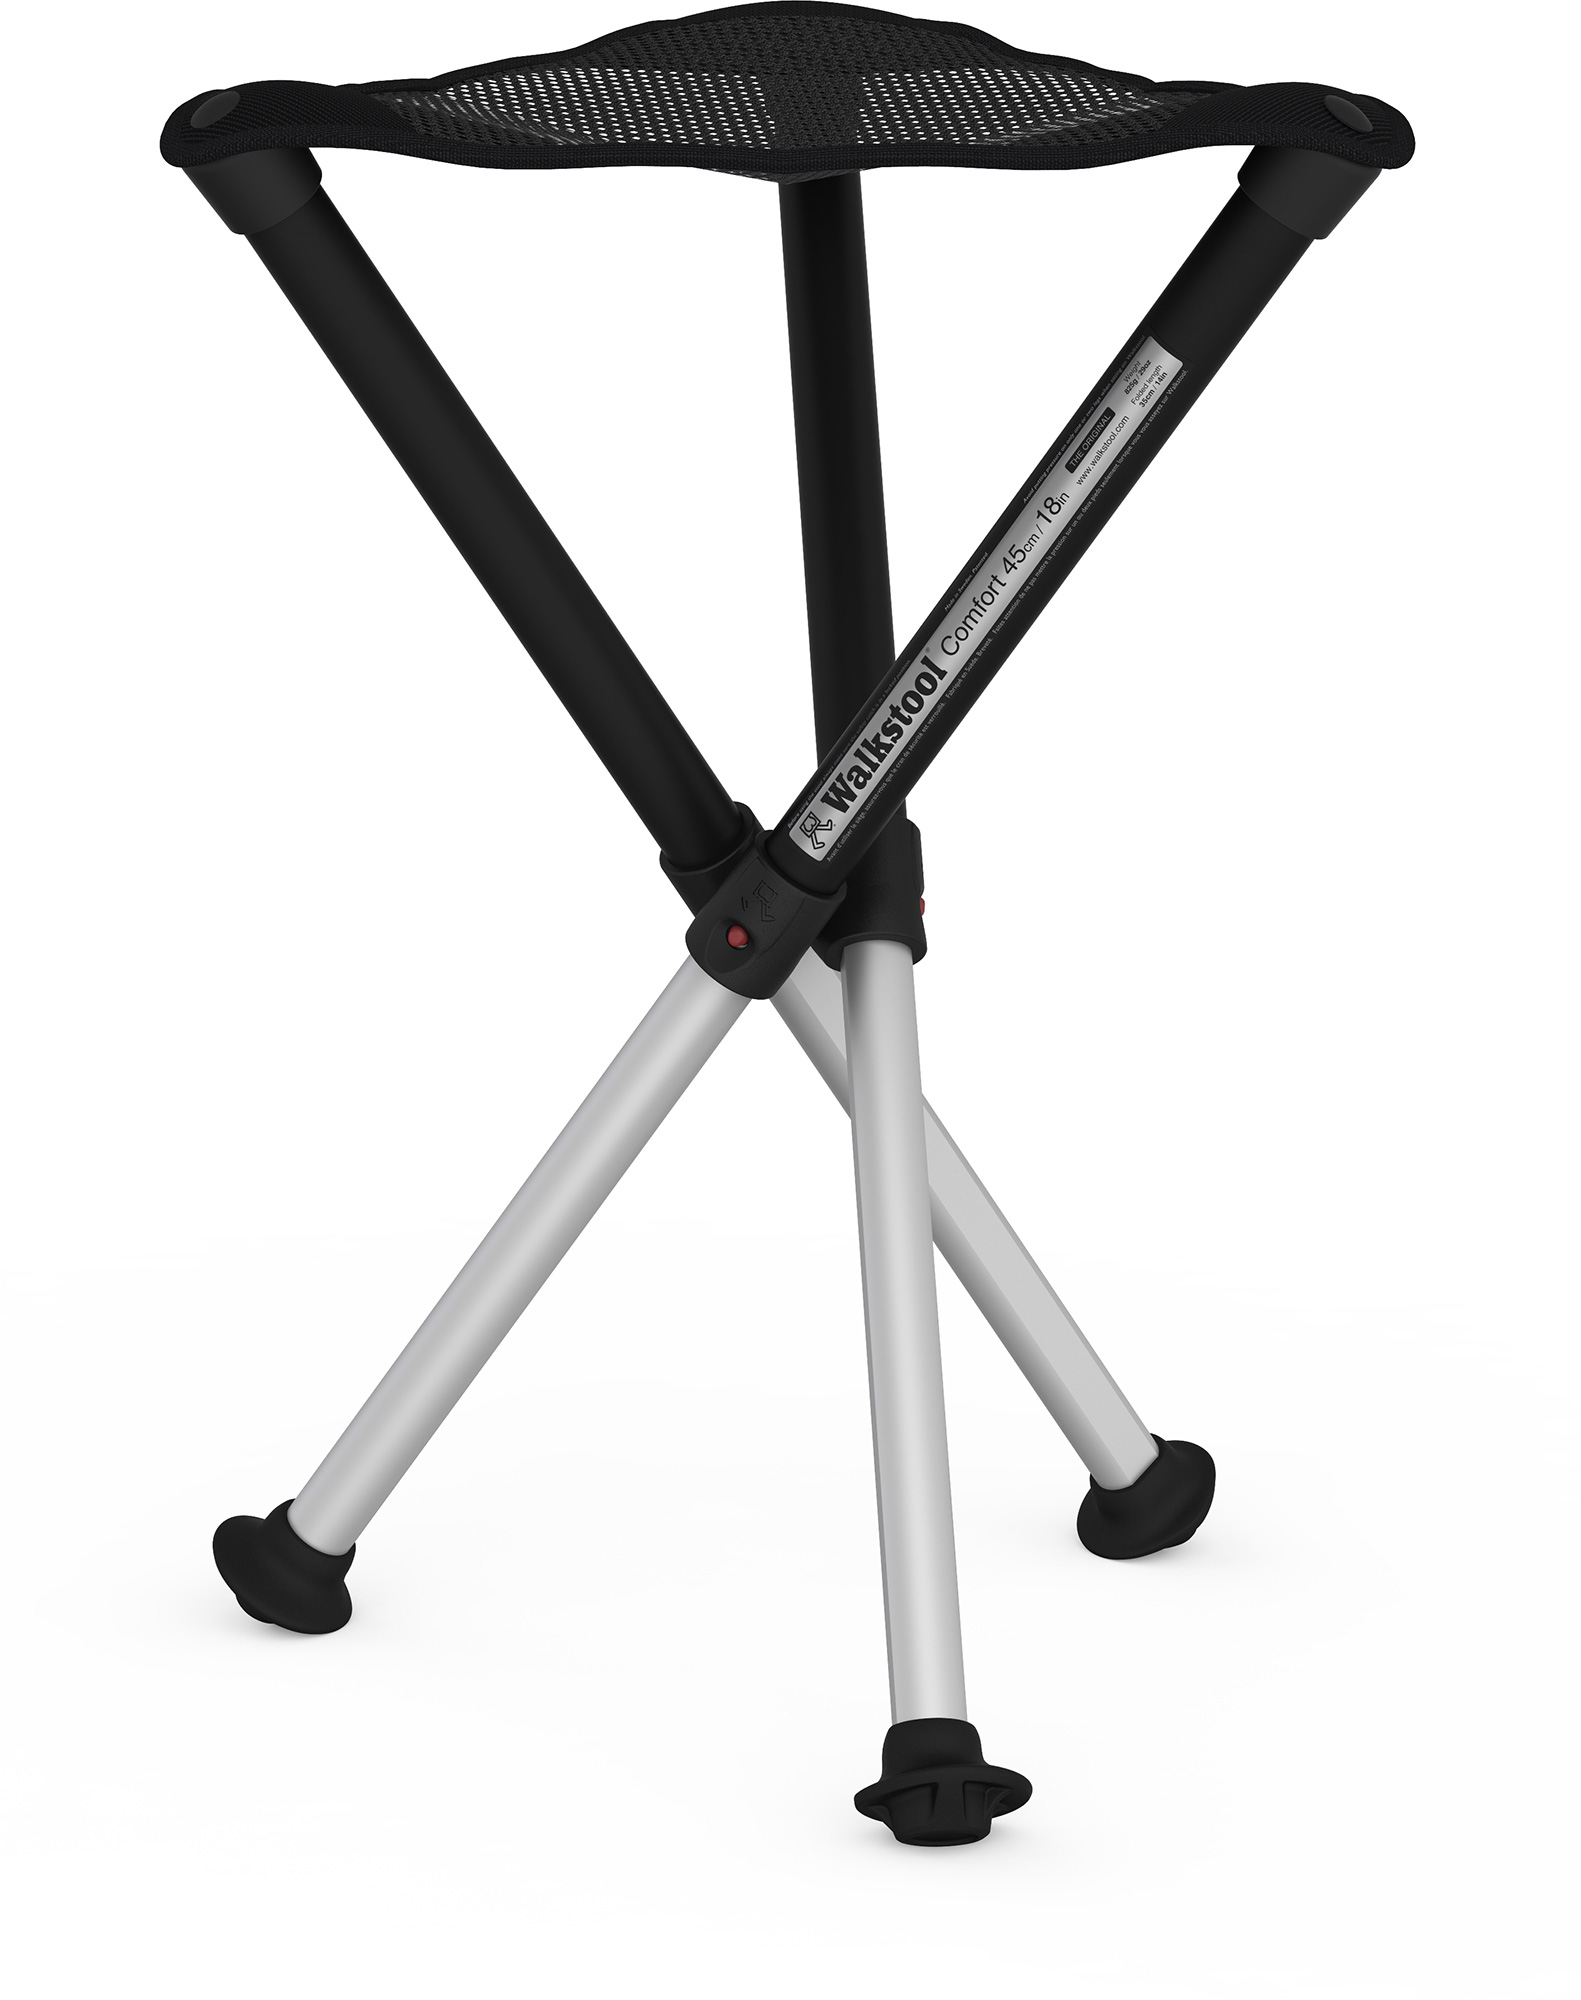 Portable Stool Walkstool Wa18 18in Portable Stool With Carry Case